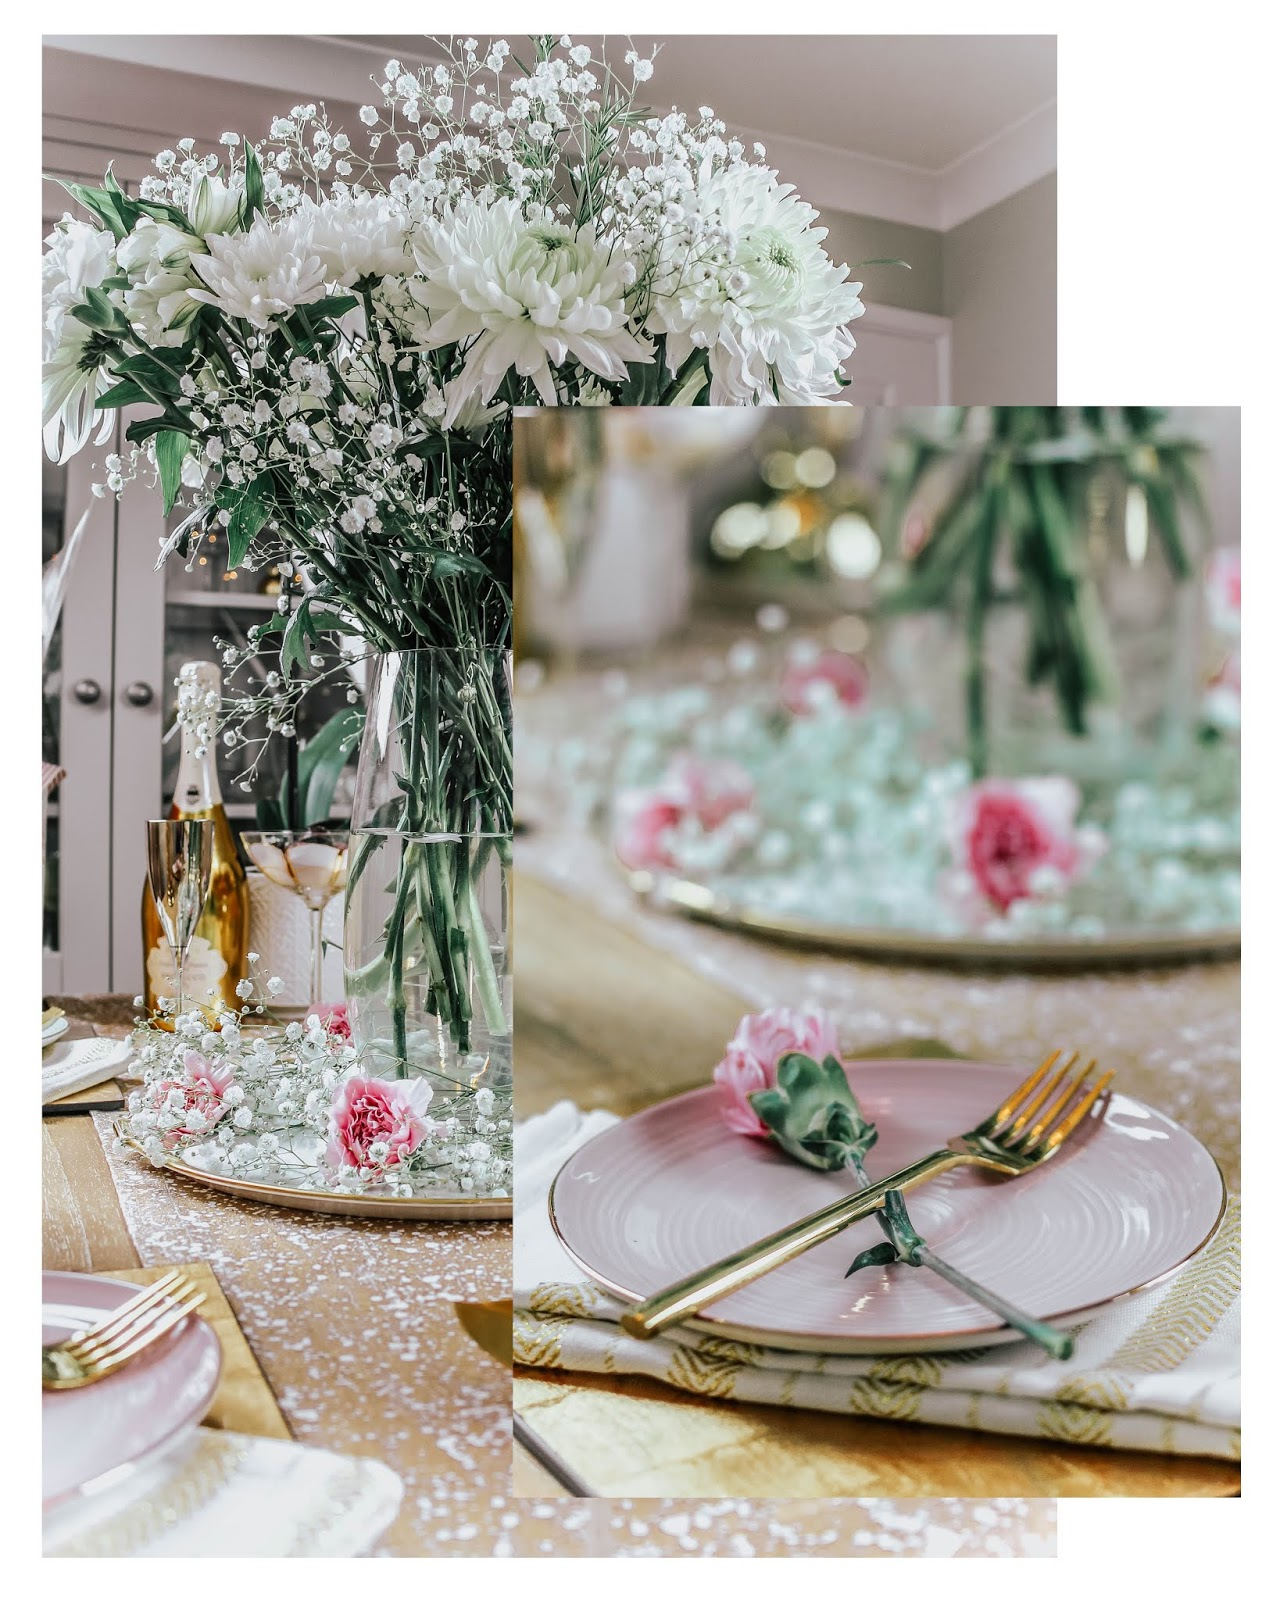 Romantic Feminine Dinner Table Finishing Touches